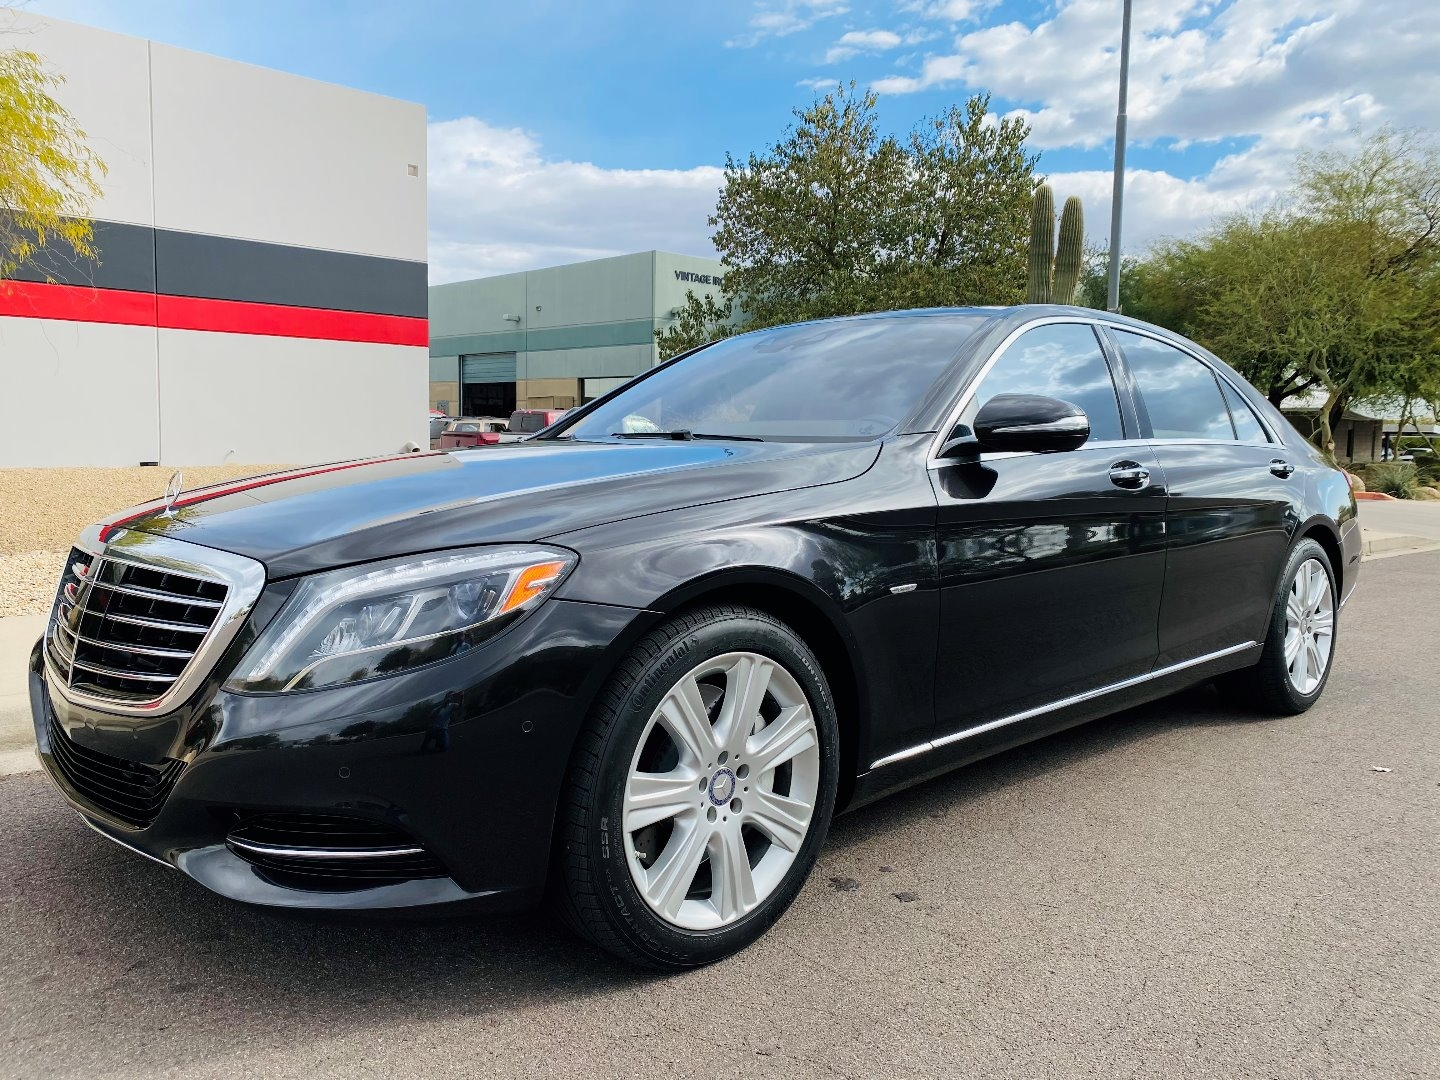 2014 Mercedes Benz S Class S550 4matic Edition 1 Awd Lwb Sedan 25k Miles Choice Motor Group Dealership In Scottsdale